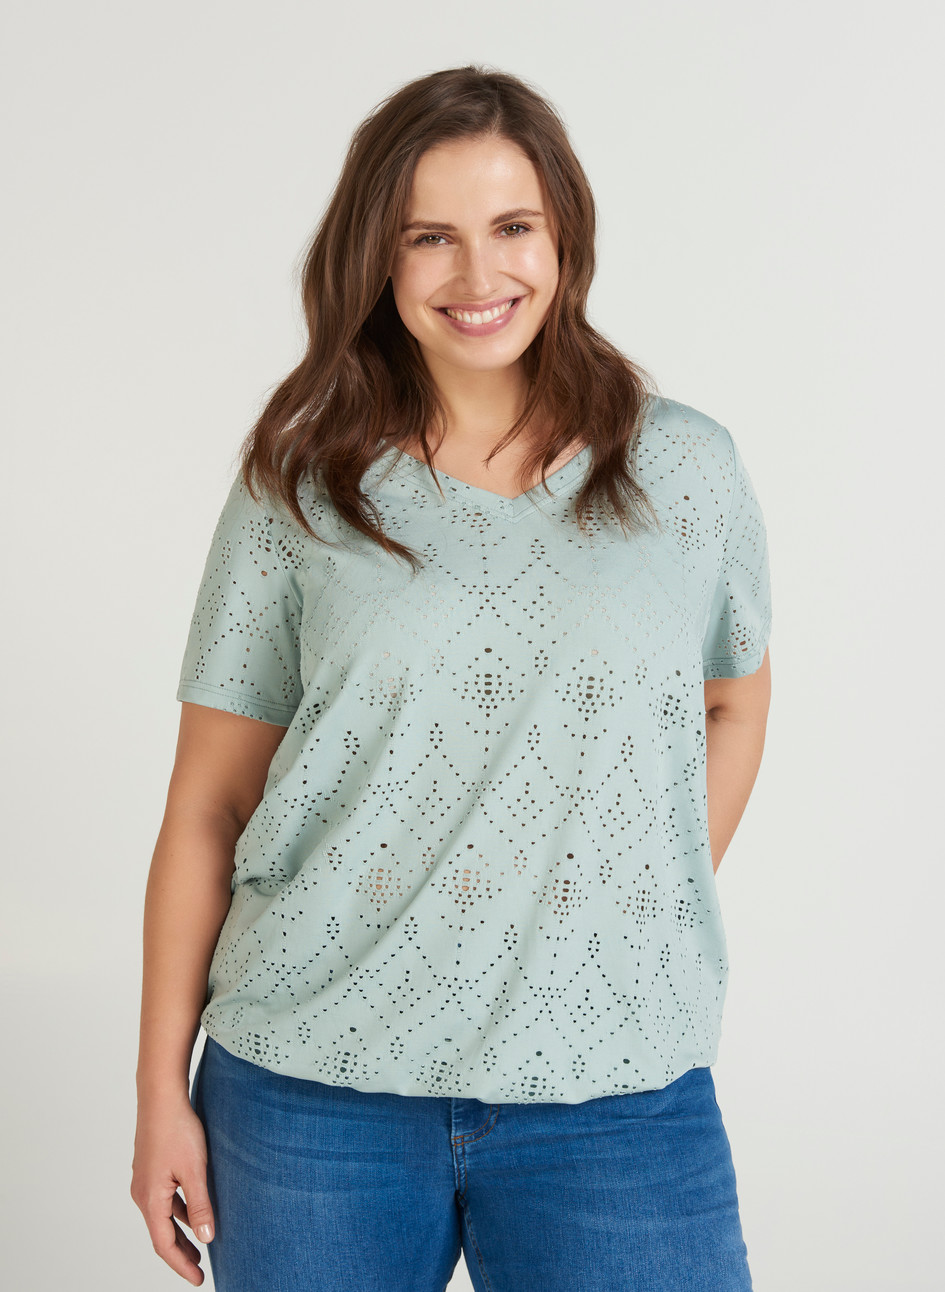 ZIZZI Stephanie Top - Mint